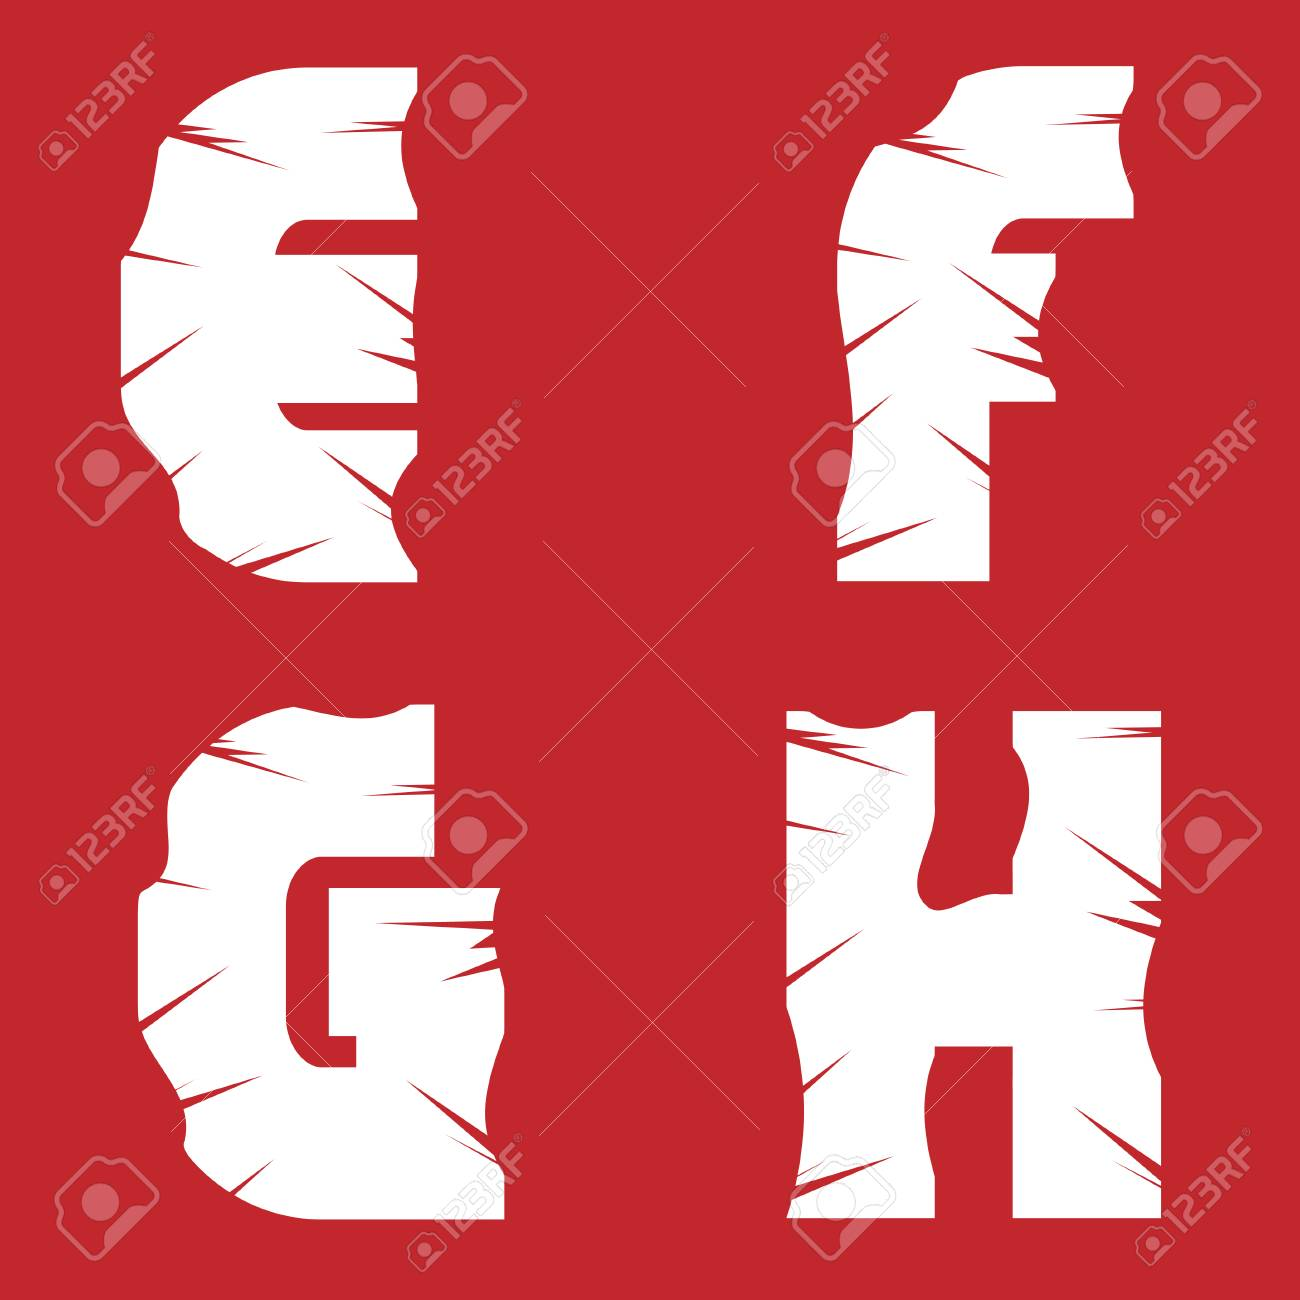 efgh grunge letters white scratch alphabet on the red background